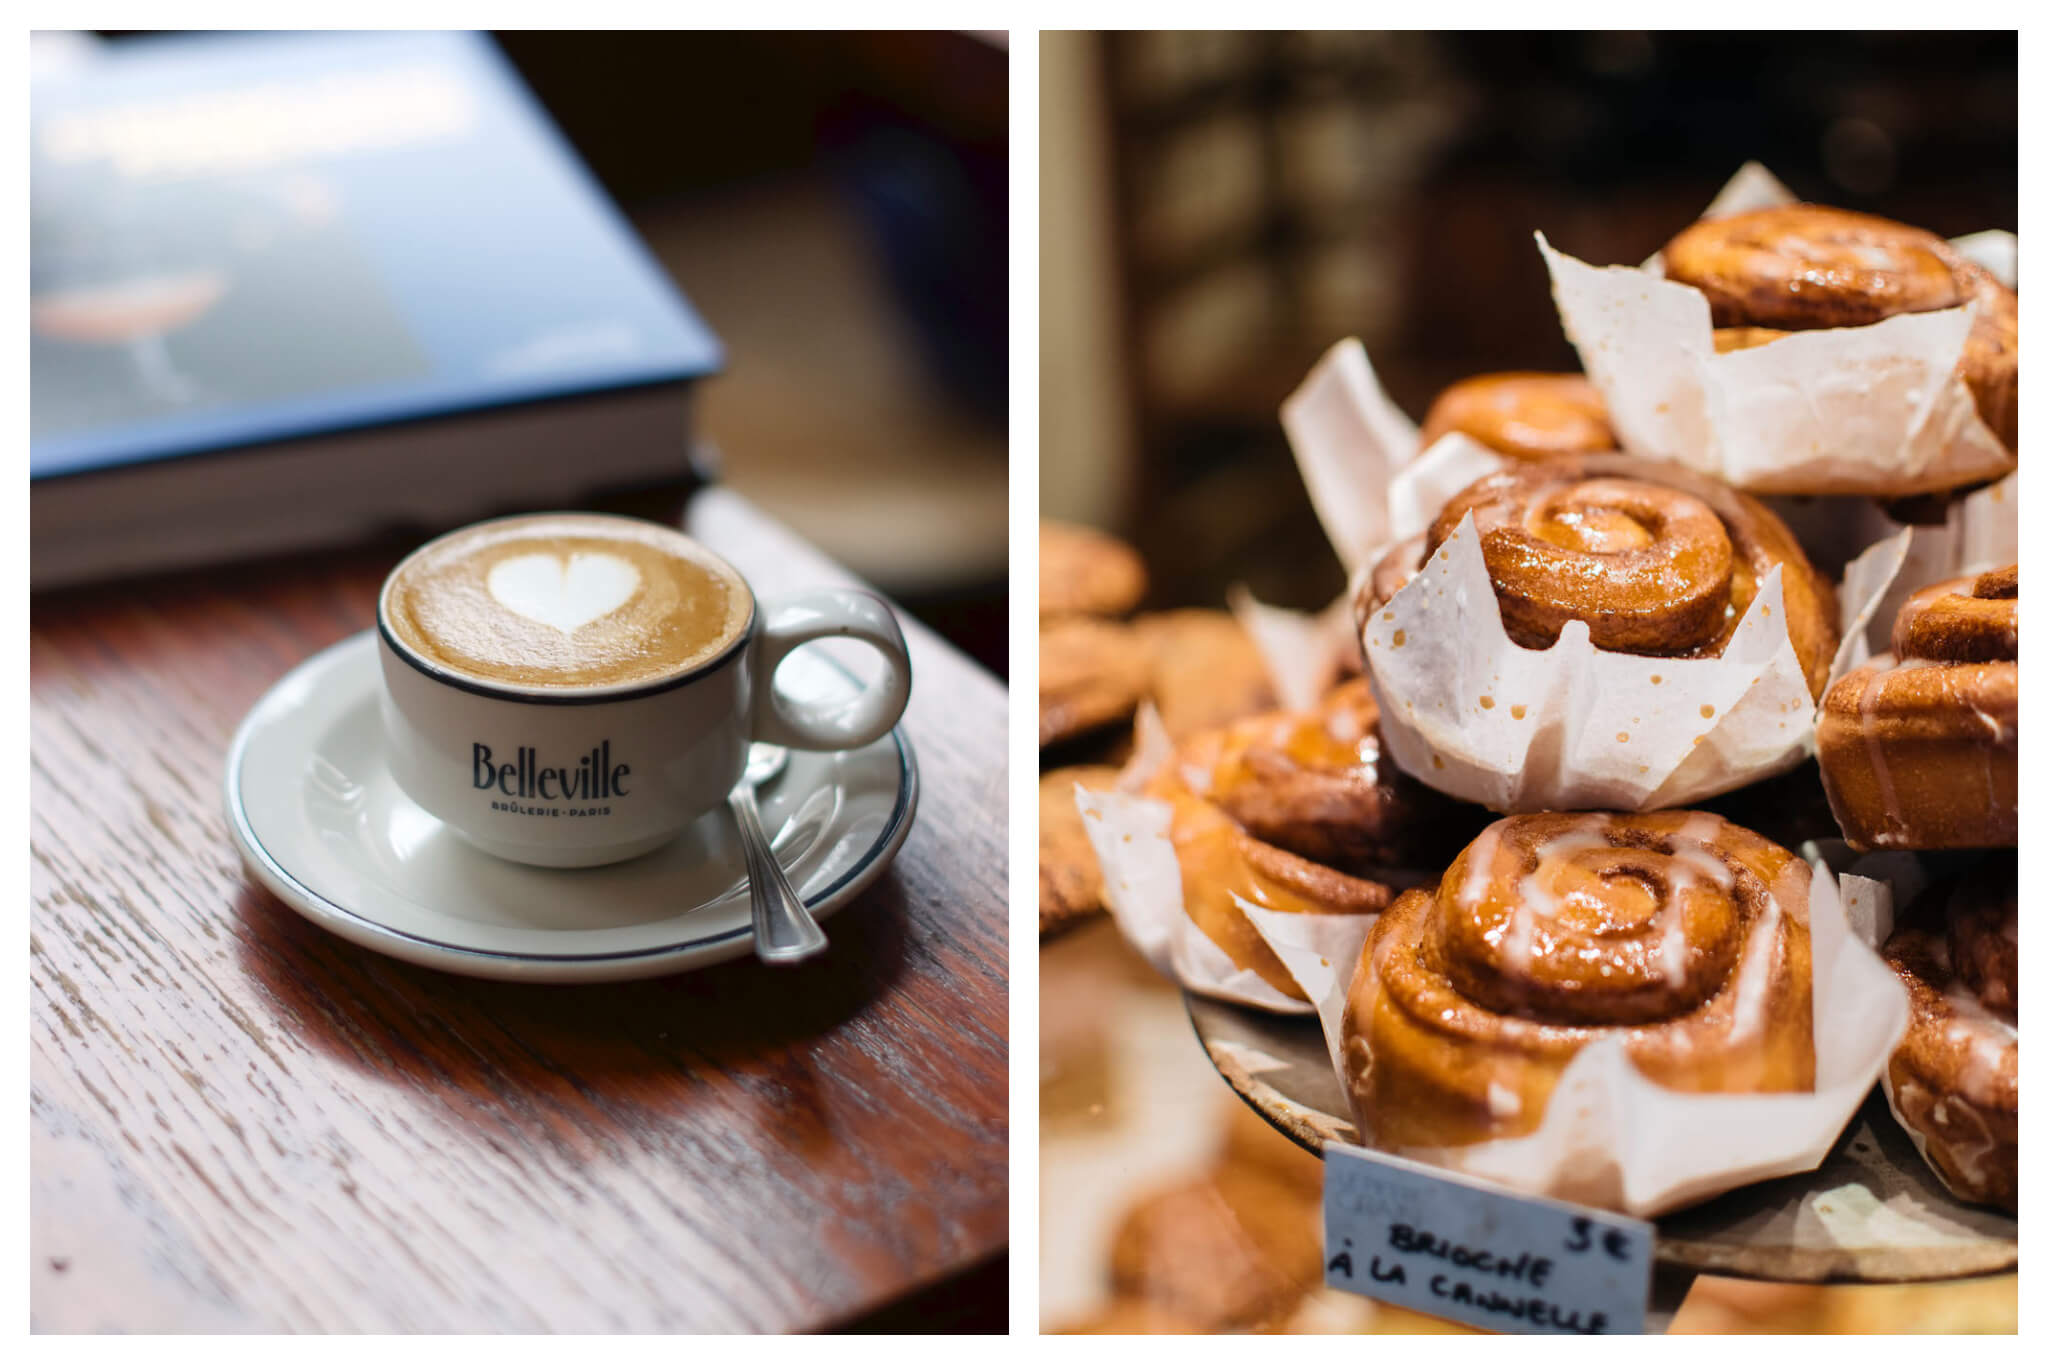 Left, a cup of frothy coffee on the wooden counter of La Fontaine de Belleville in Paris. Right, sticky cinnamon rolls stacked on the counter of a bakery in Paris.